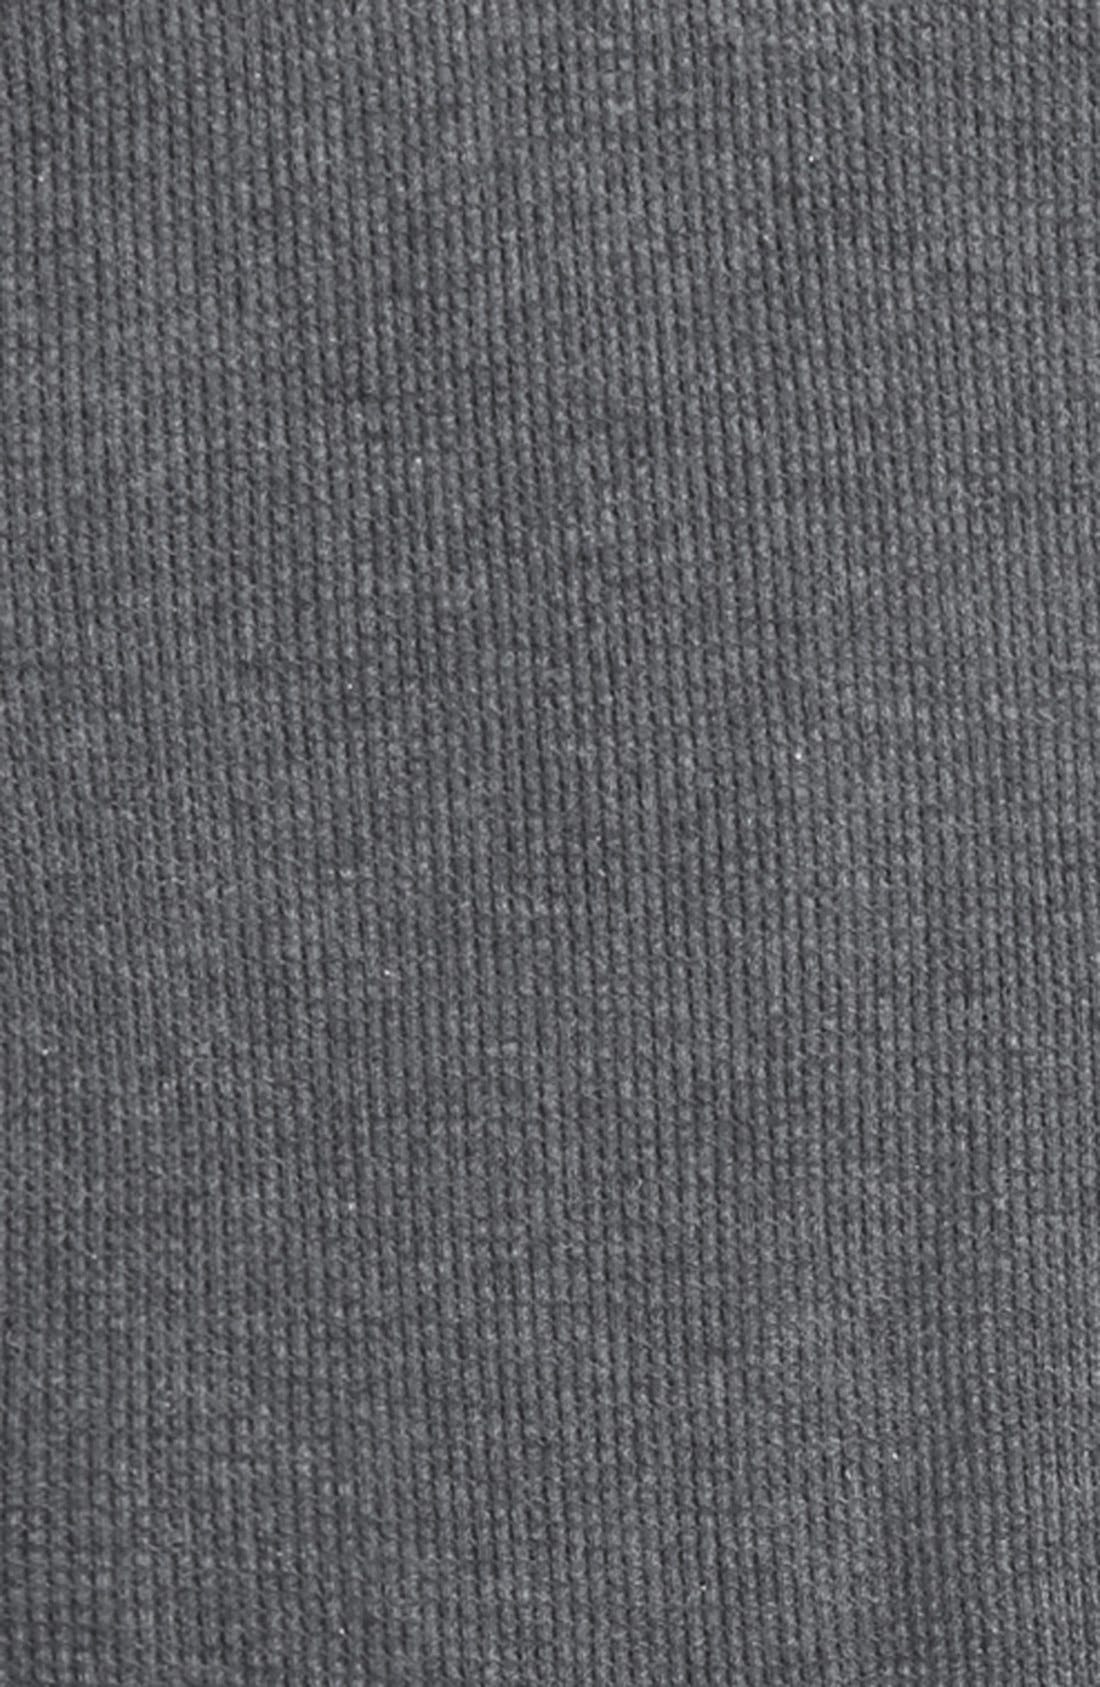 Long Sleeve Thermal T-Shirt,                             Alternate thumbnail 4, color,                             Grey Charcoal Heather